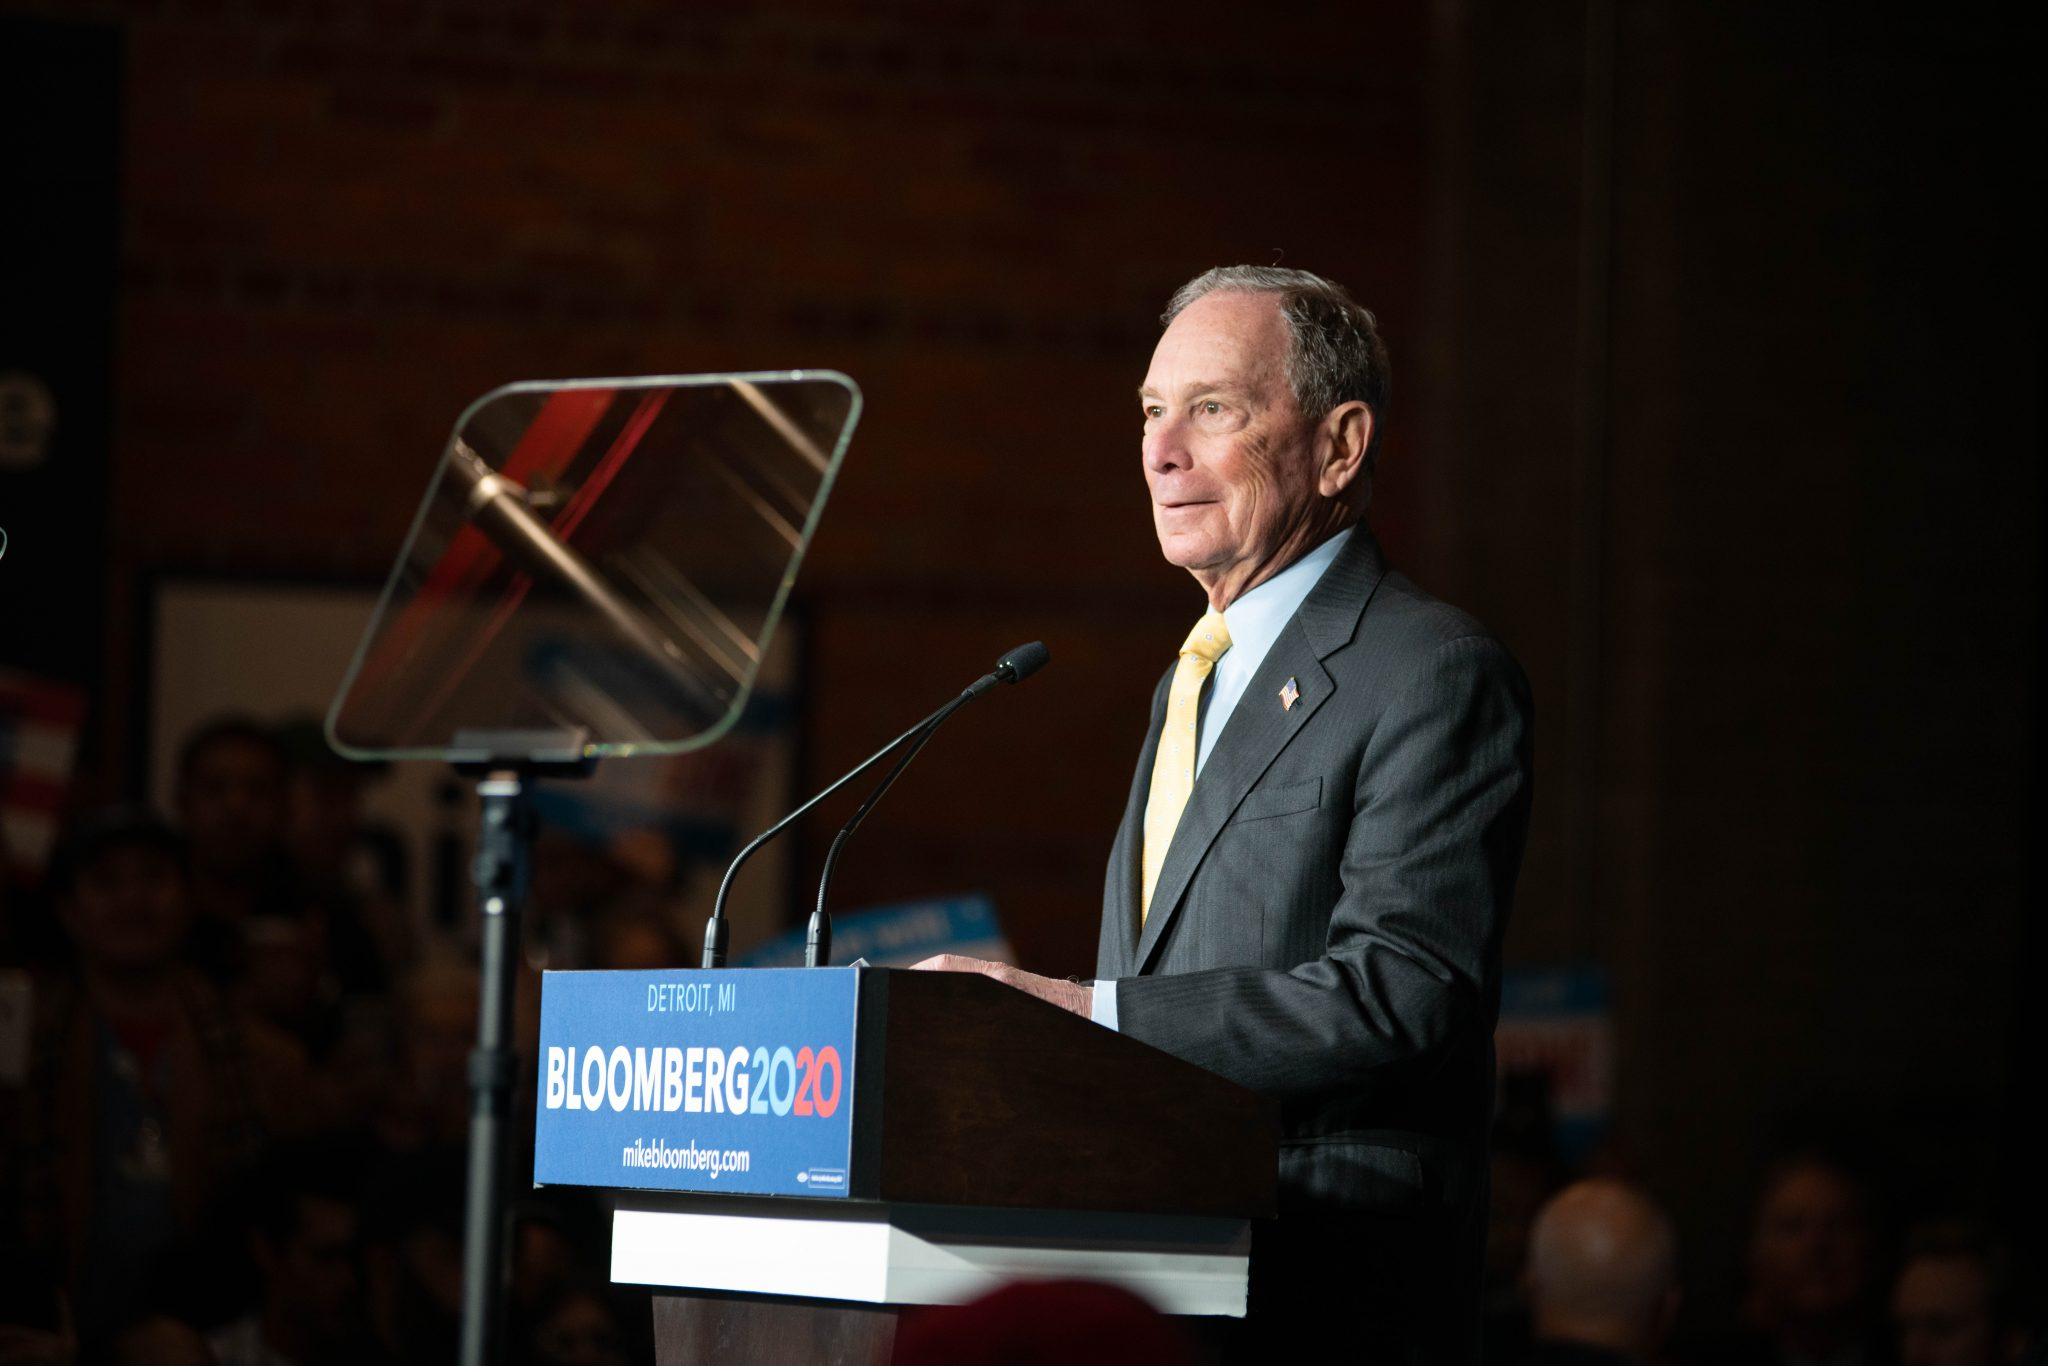 MIKE BLOOMBERG AT THE EASTERN. PHOTO AMY NICOLE / ACRONYM